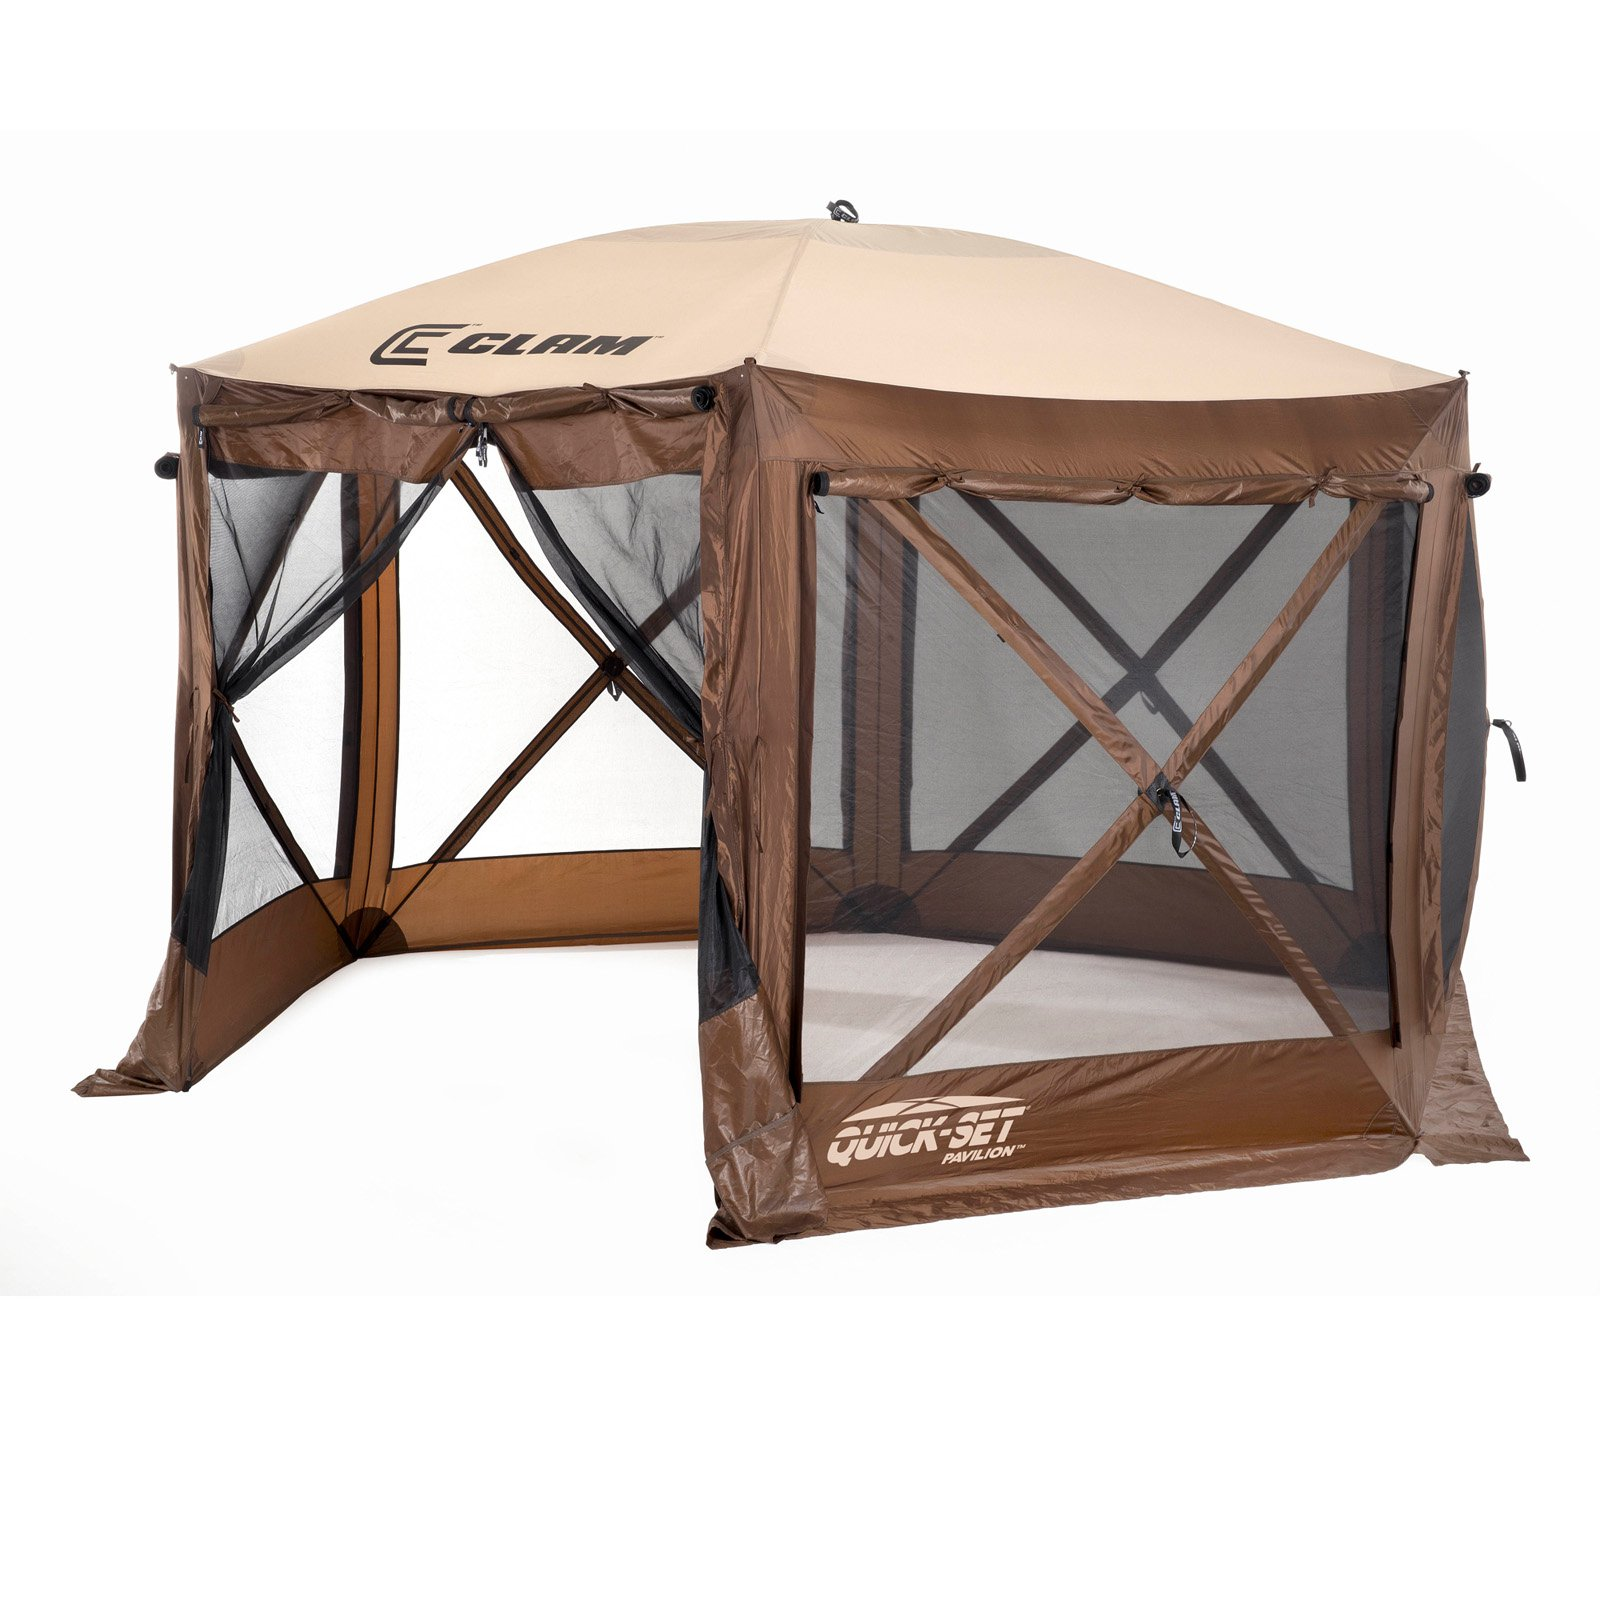 Clam Quick-Set Pavilion 6 Side DLX Canopy Shelter